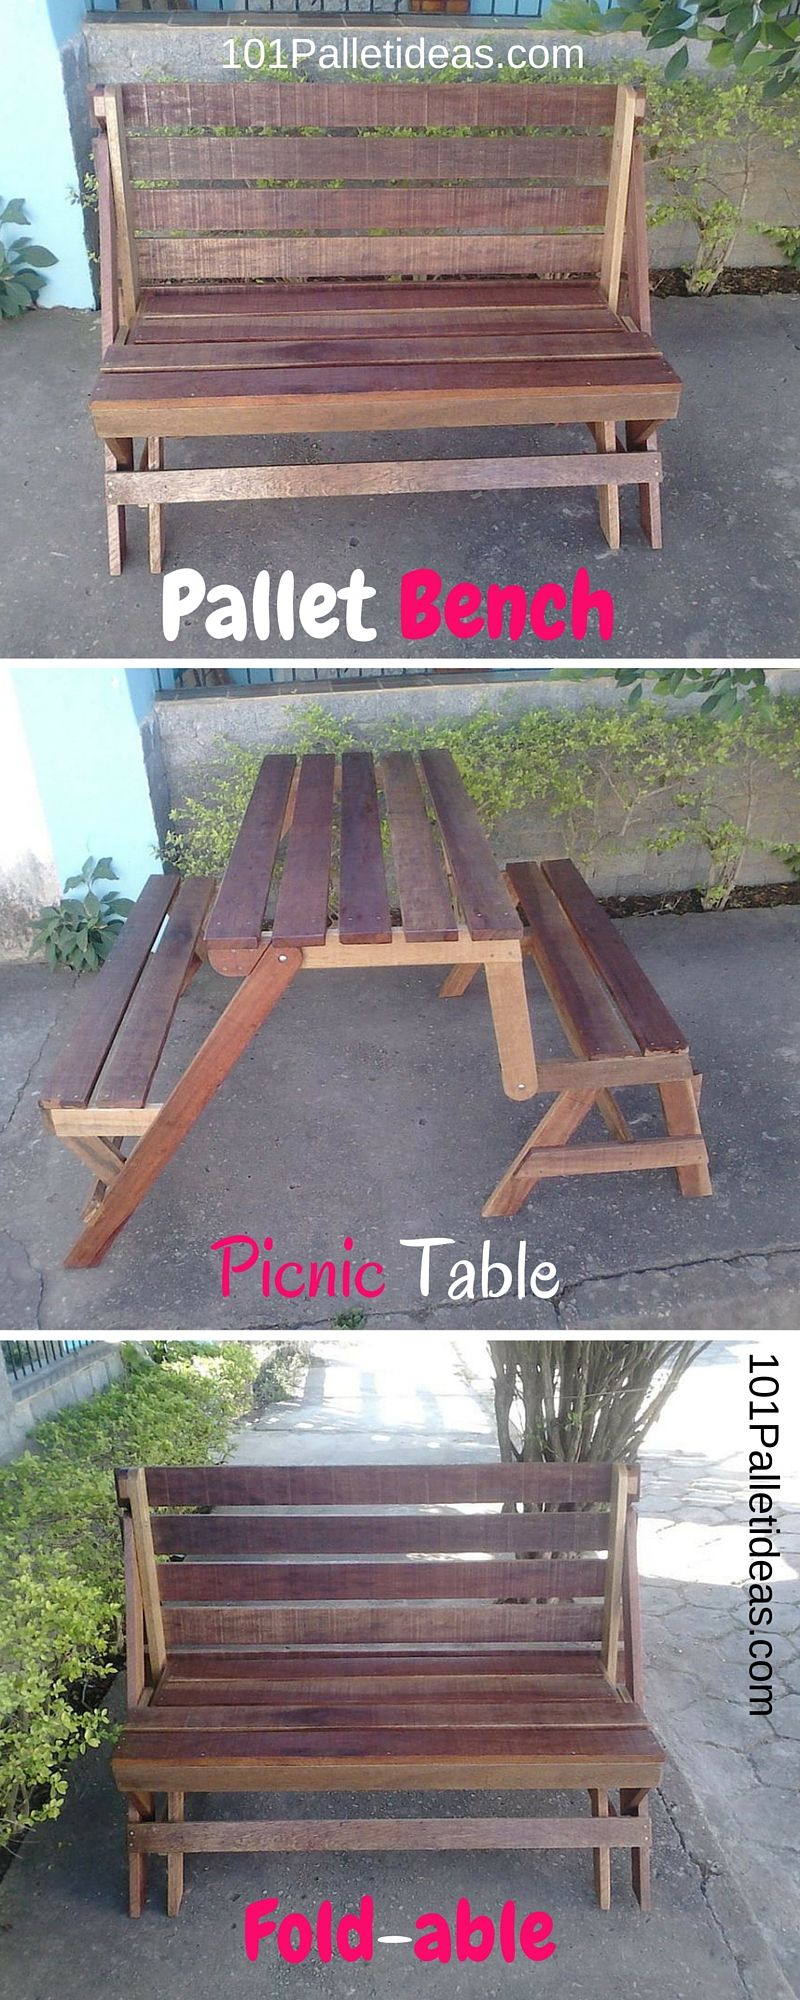 Diy Fold Able Pallet Bench Picnic Table 101 Pallet